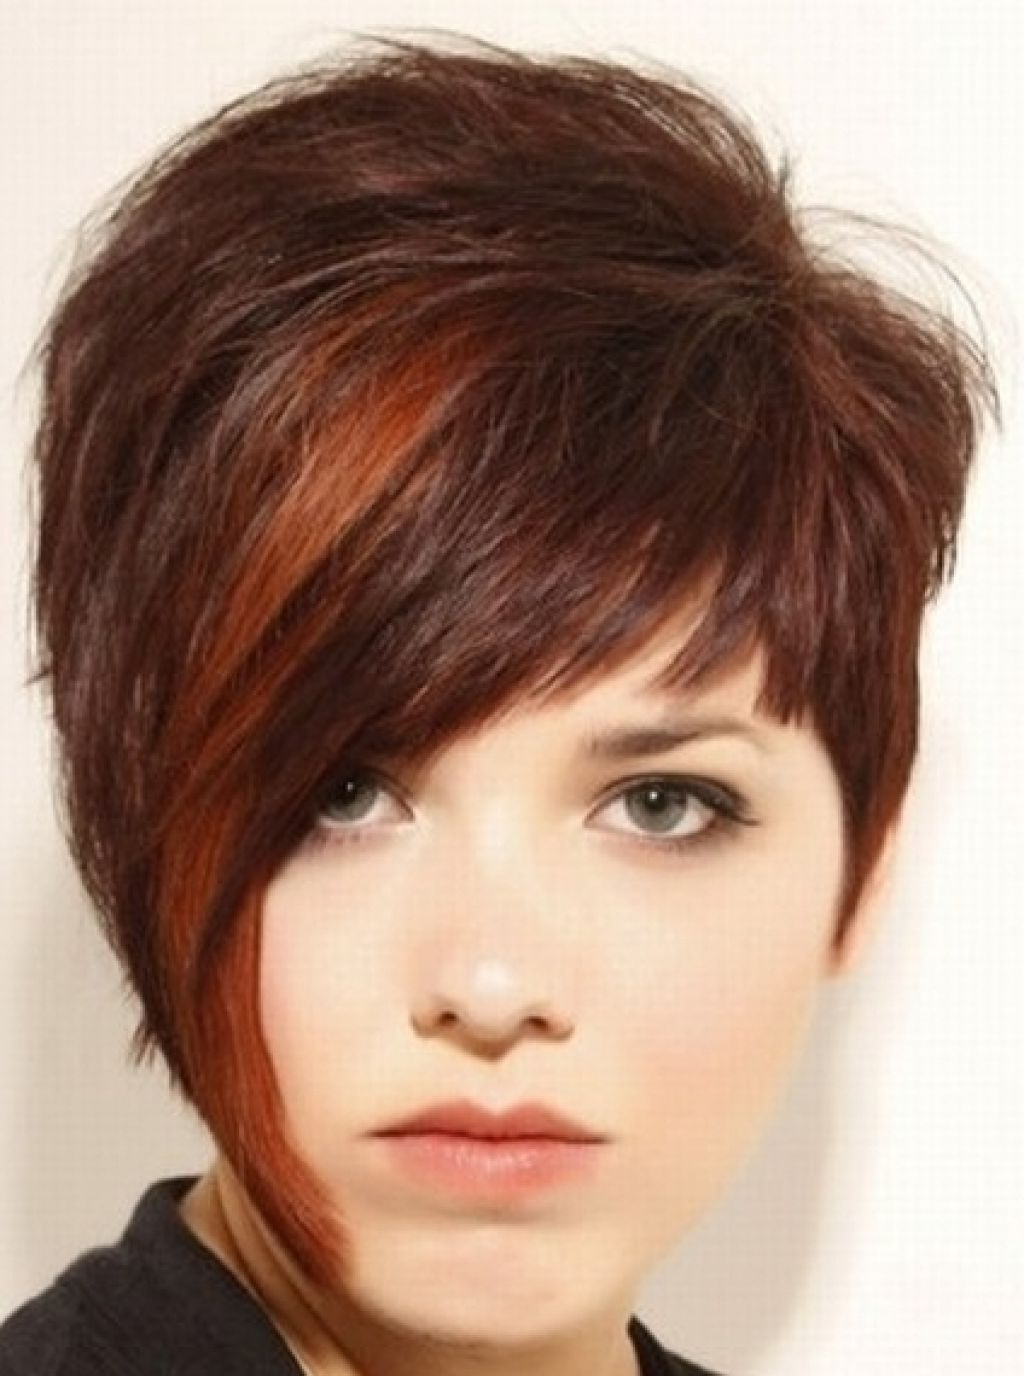 Asymetrical Short Hairstyles, Asymmetrical Hair, Asymmetrical Throughout Edgy Asymmetrical Short Haircuts (Gallery 3 of 25)